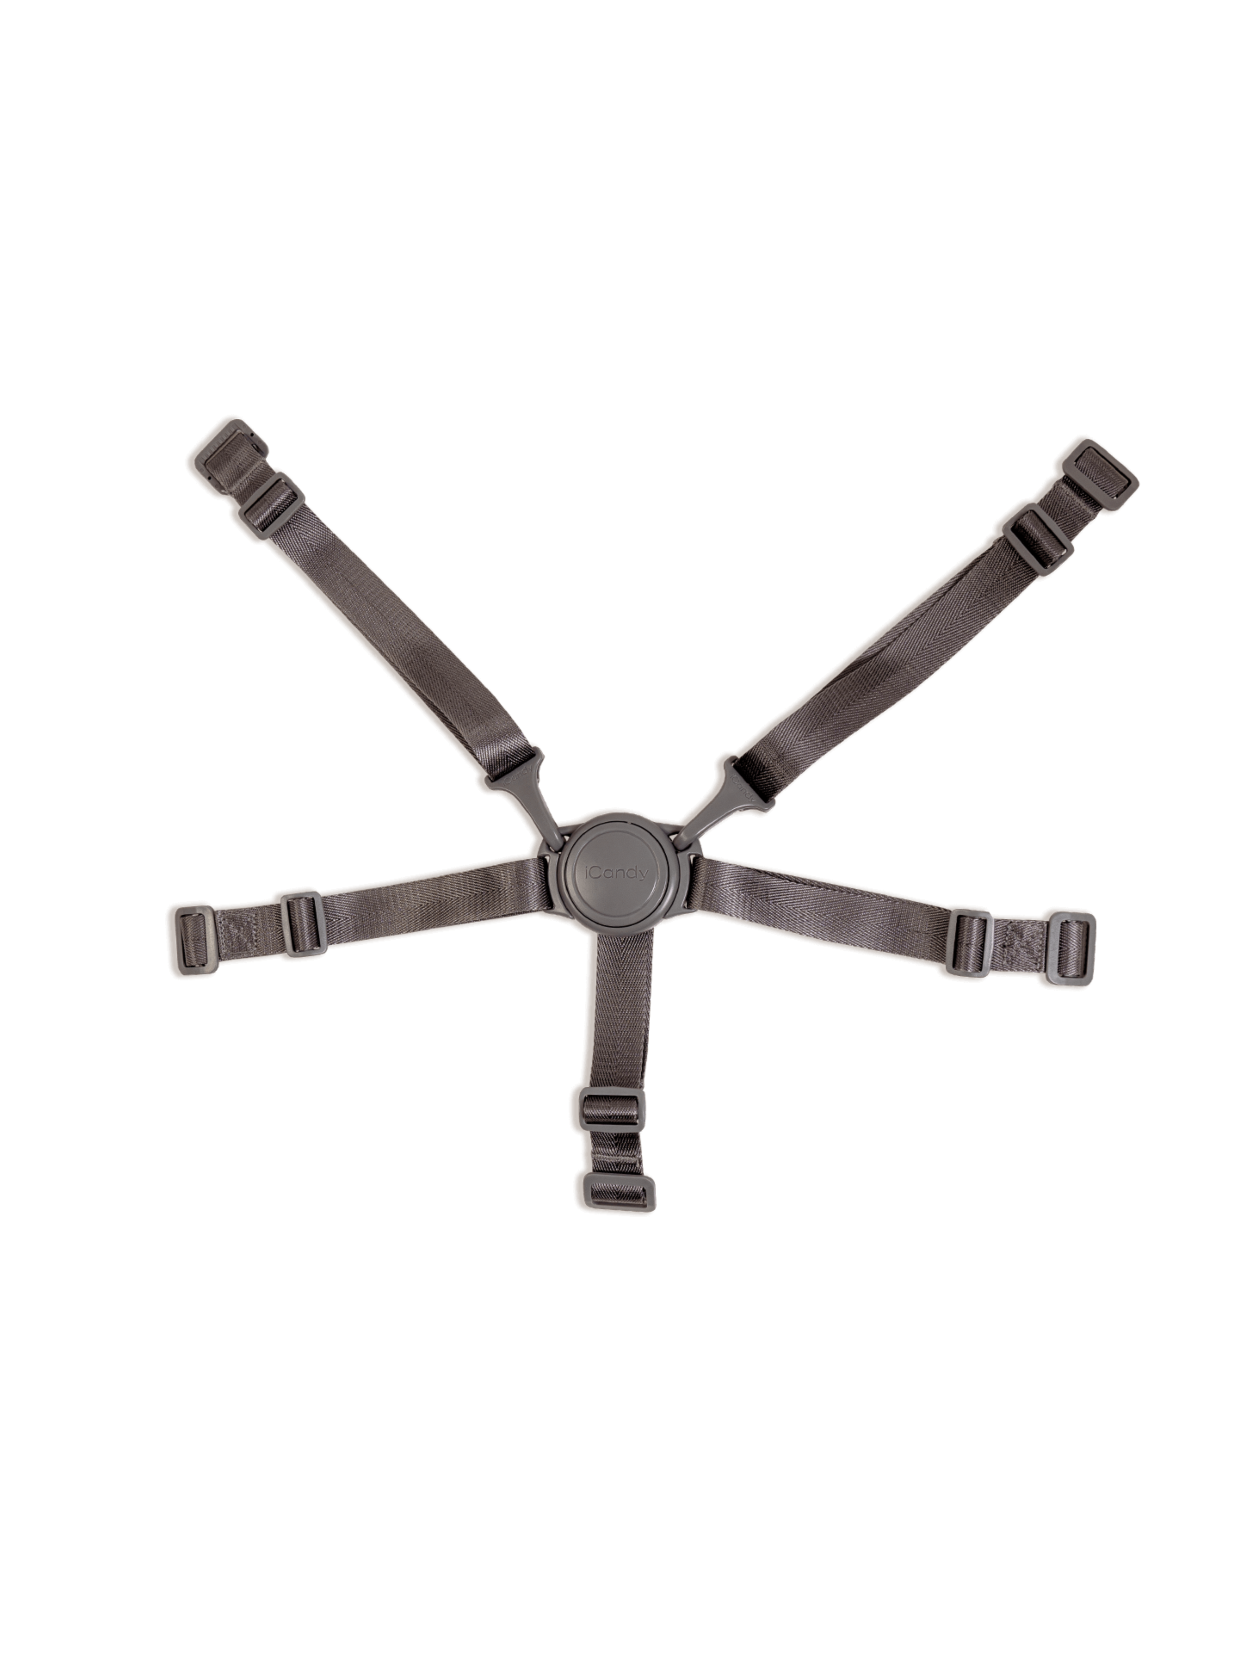 Lime 2020 5-Point Harness